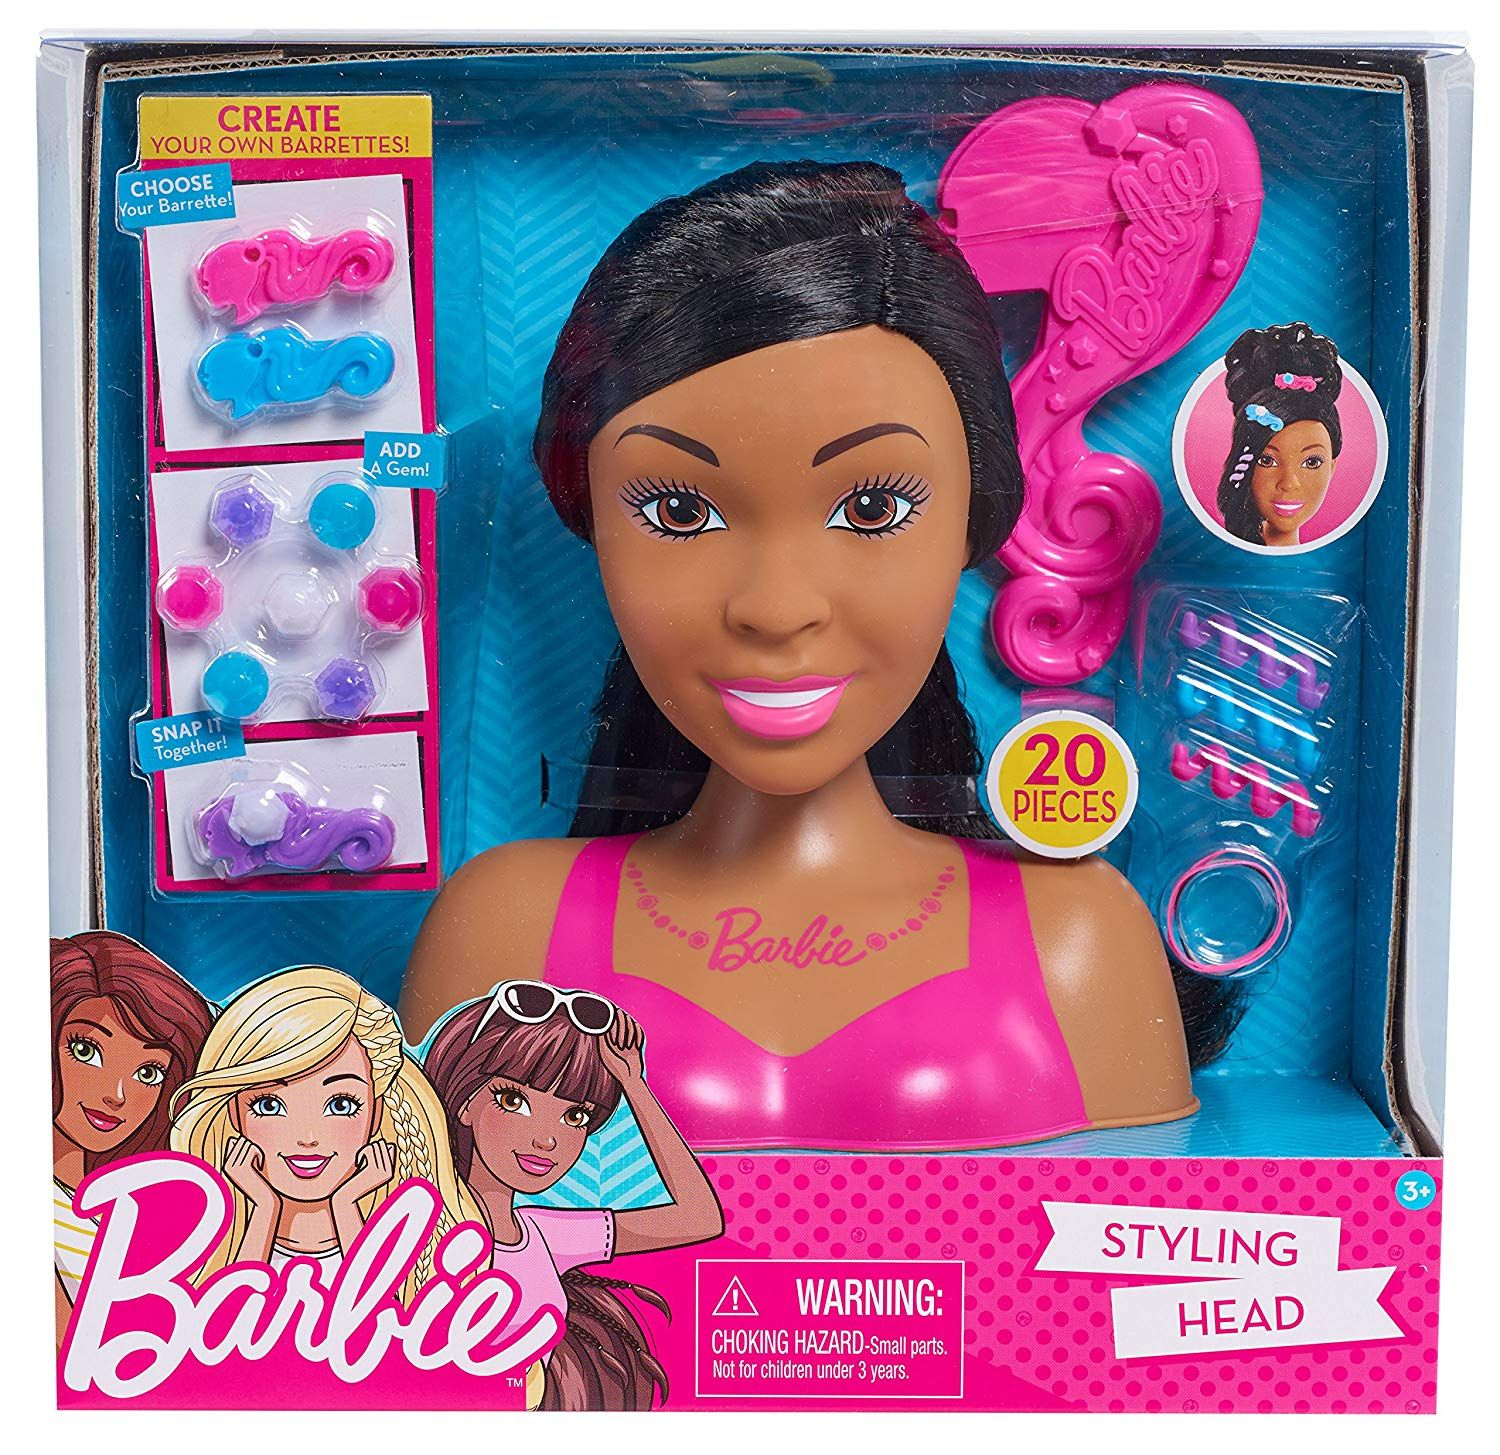 Barbie Styling Head Multicolor Barbie Styling Head Diy Barbie Clothes Barbie Gifts